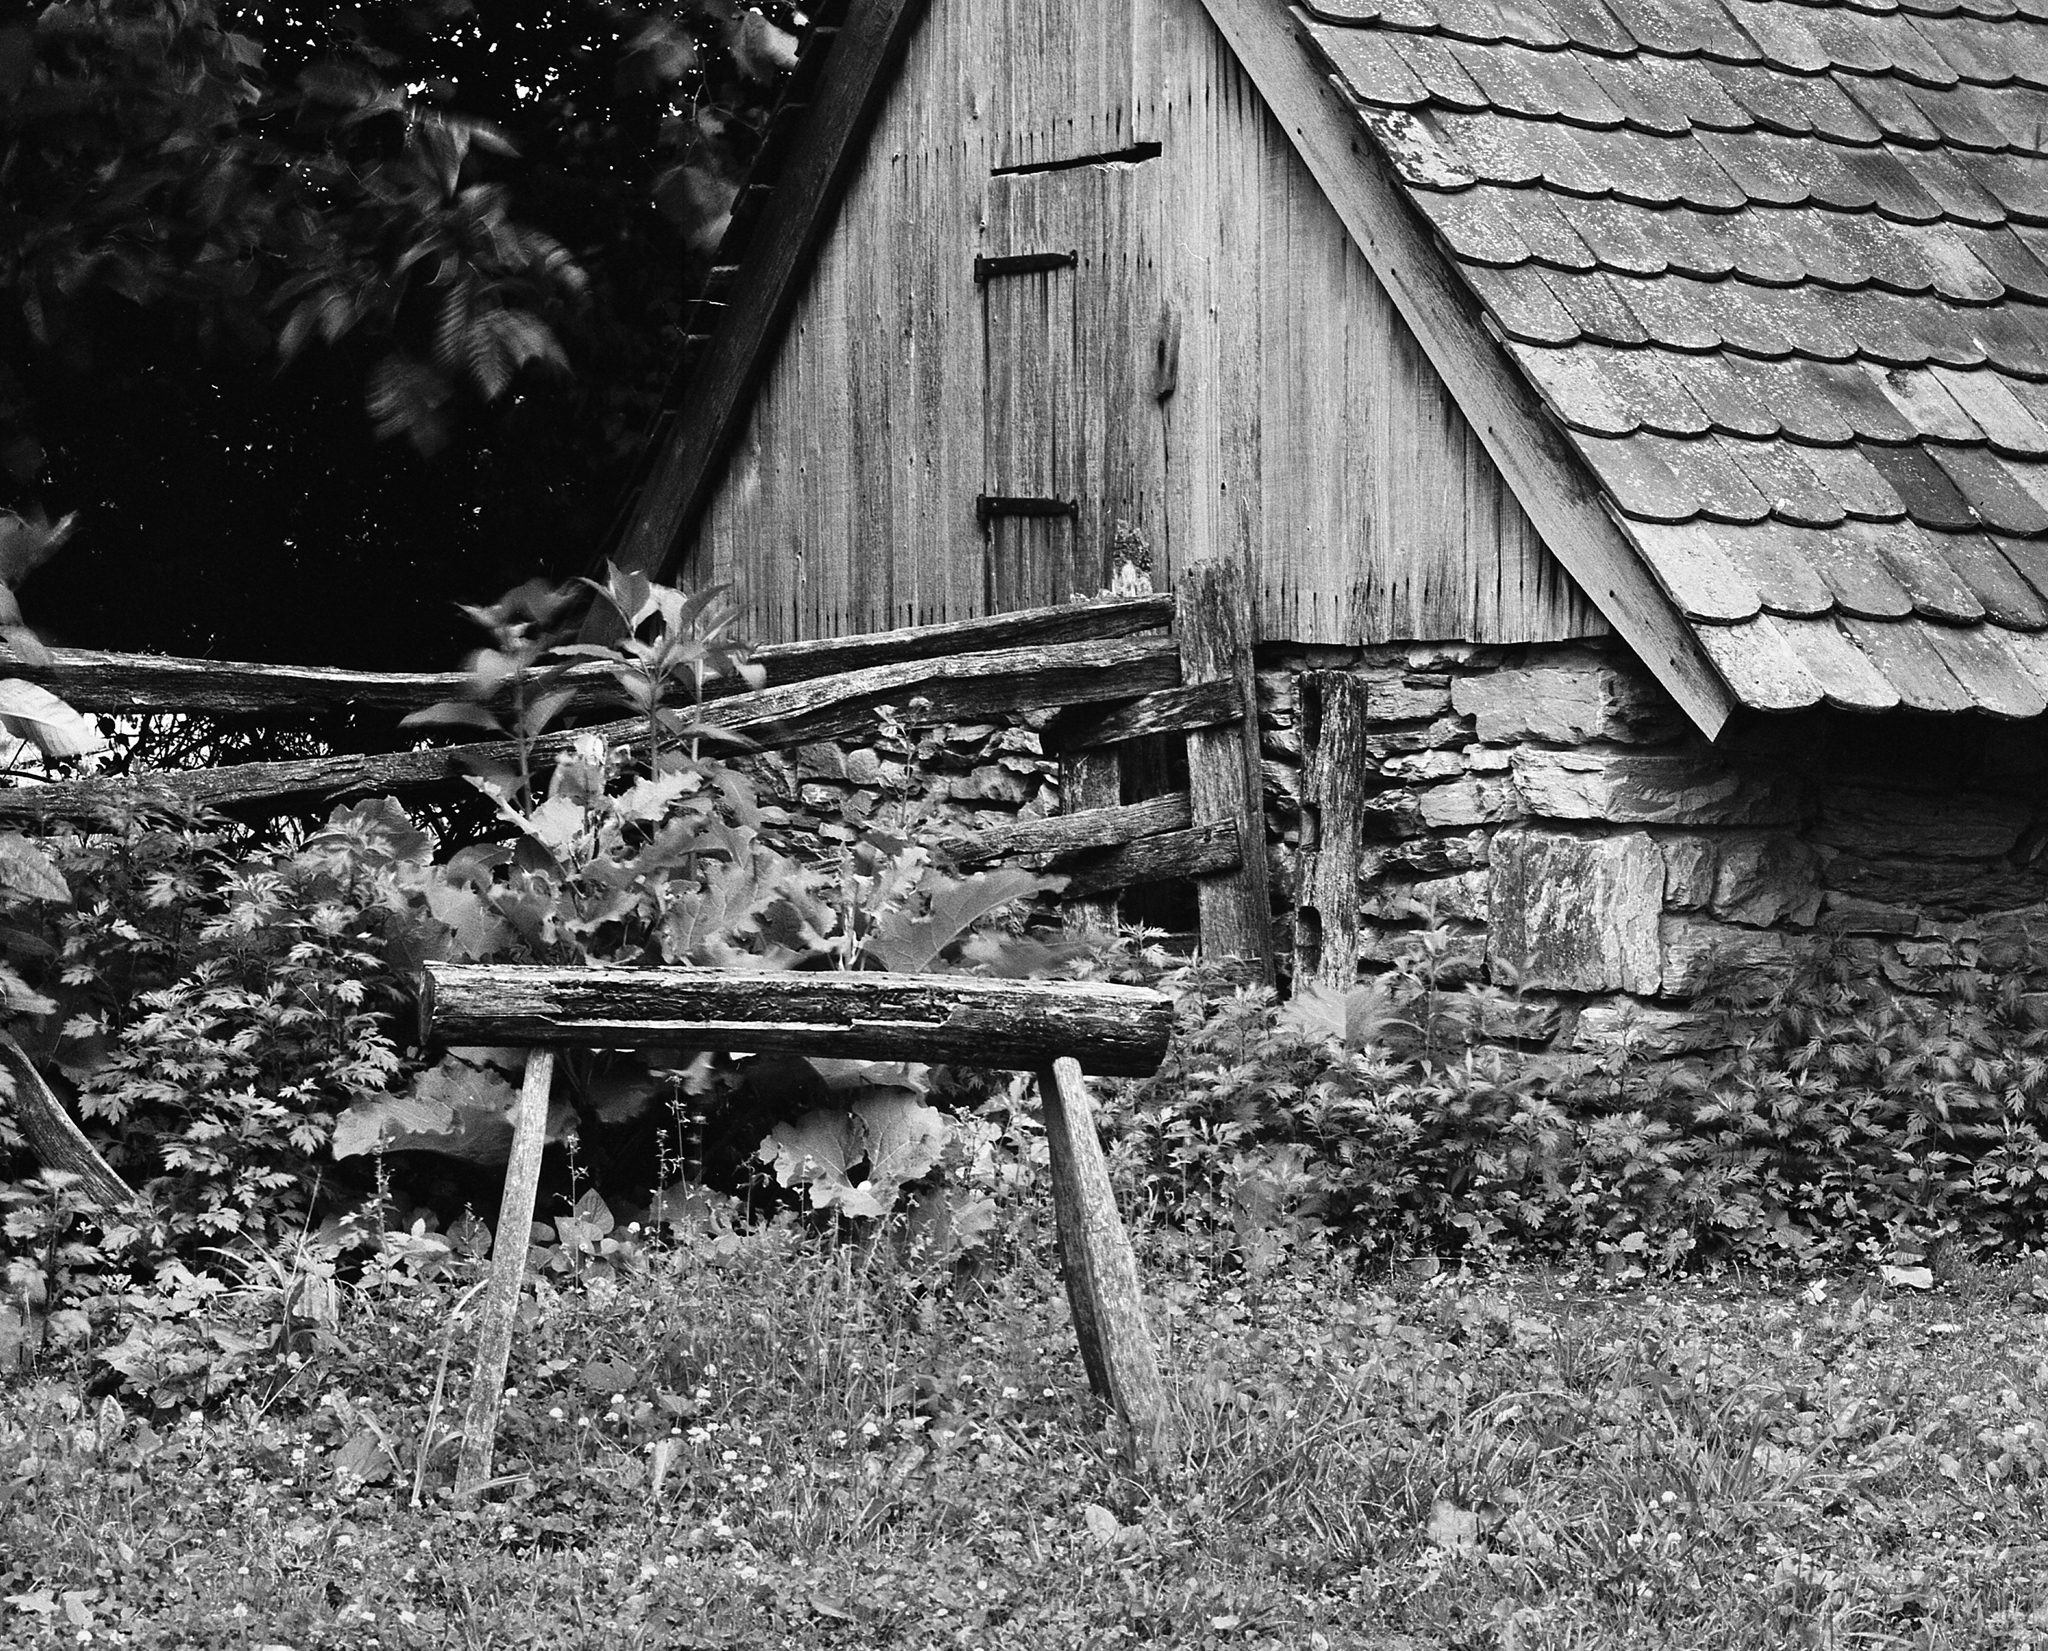 4x5_for_365_project_0170_Landis_Valley_sawhorse.jpg